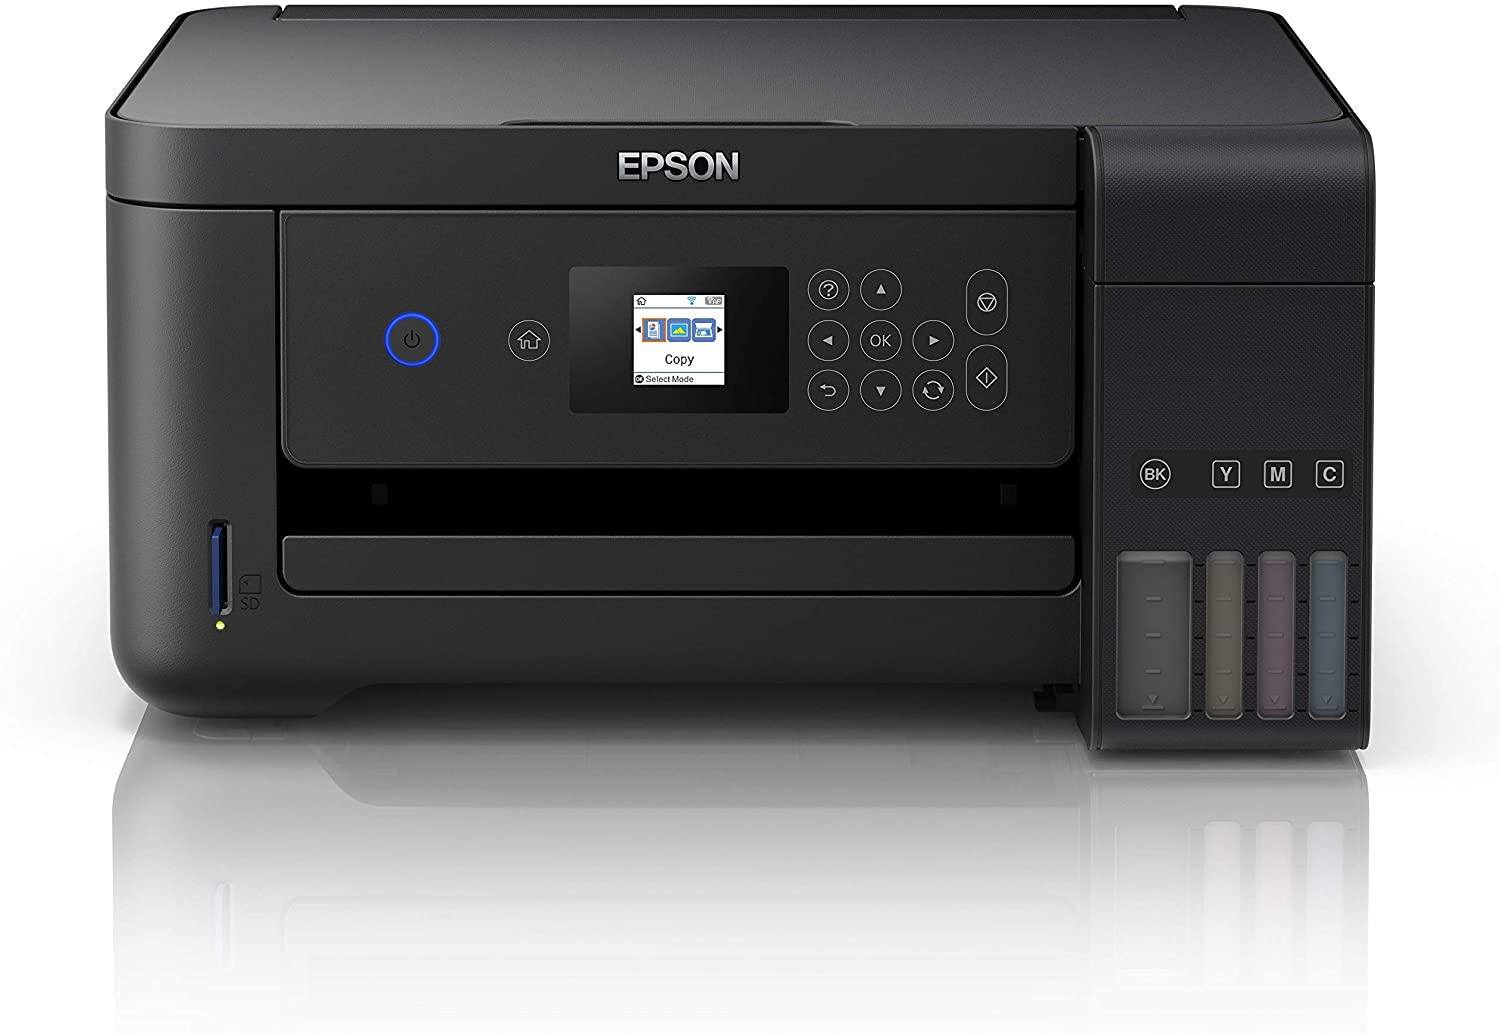 Epson EcoTank ET-2750B A4 Print Scan Copy Wi-Fi Printer best epson ecotank printer, Black + 2 Years Unlimited Printing Card uk reviews